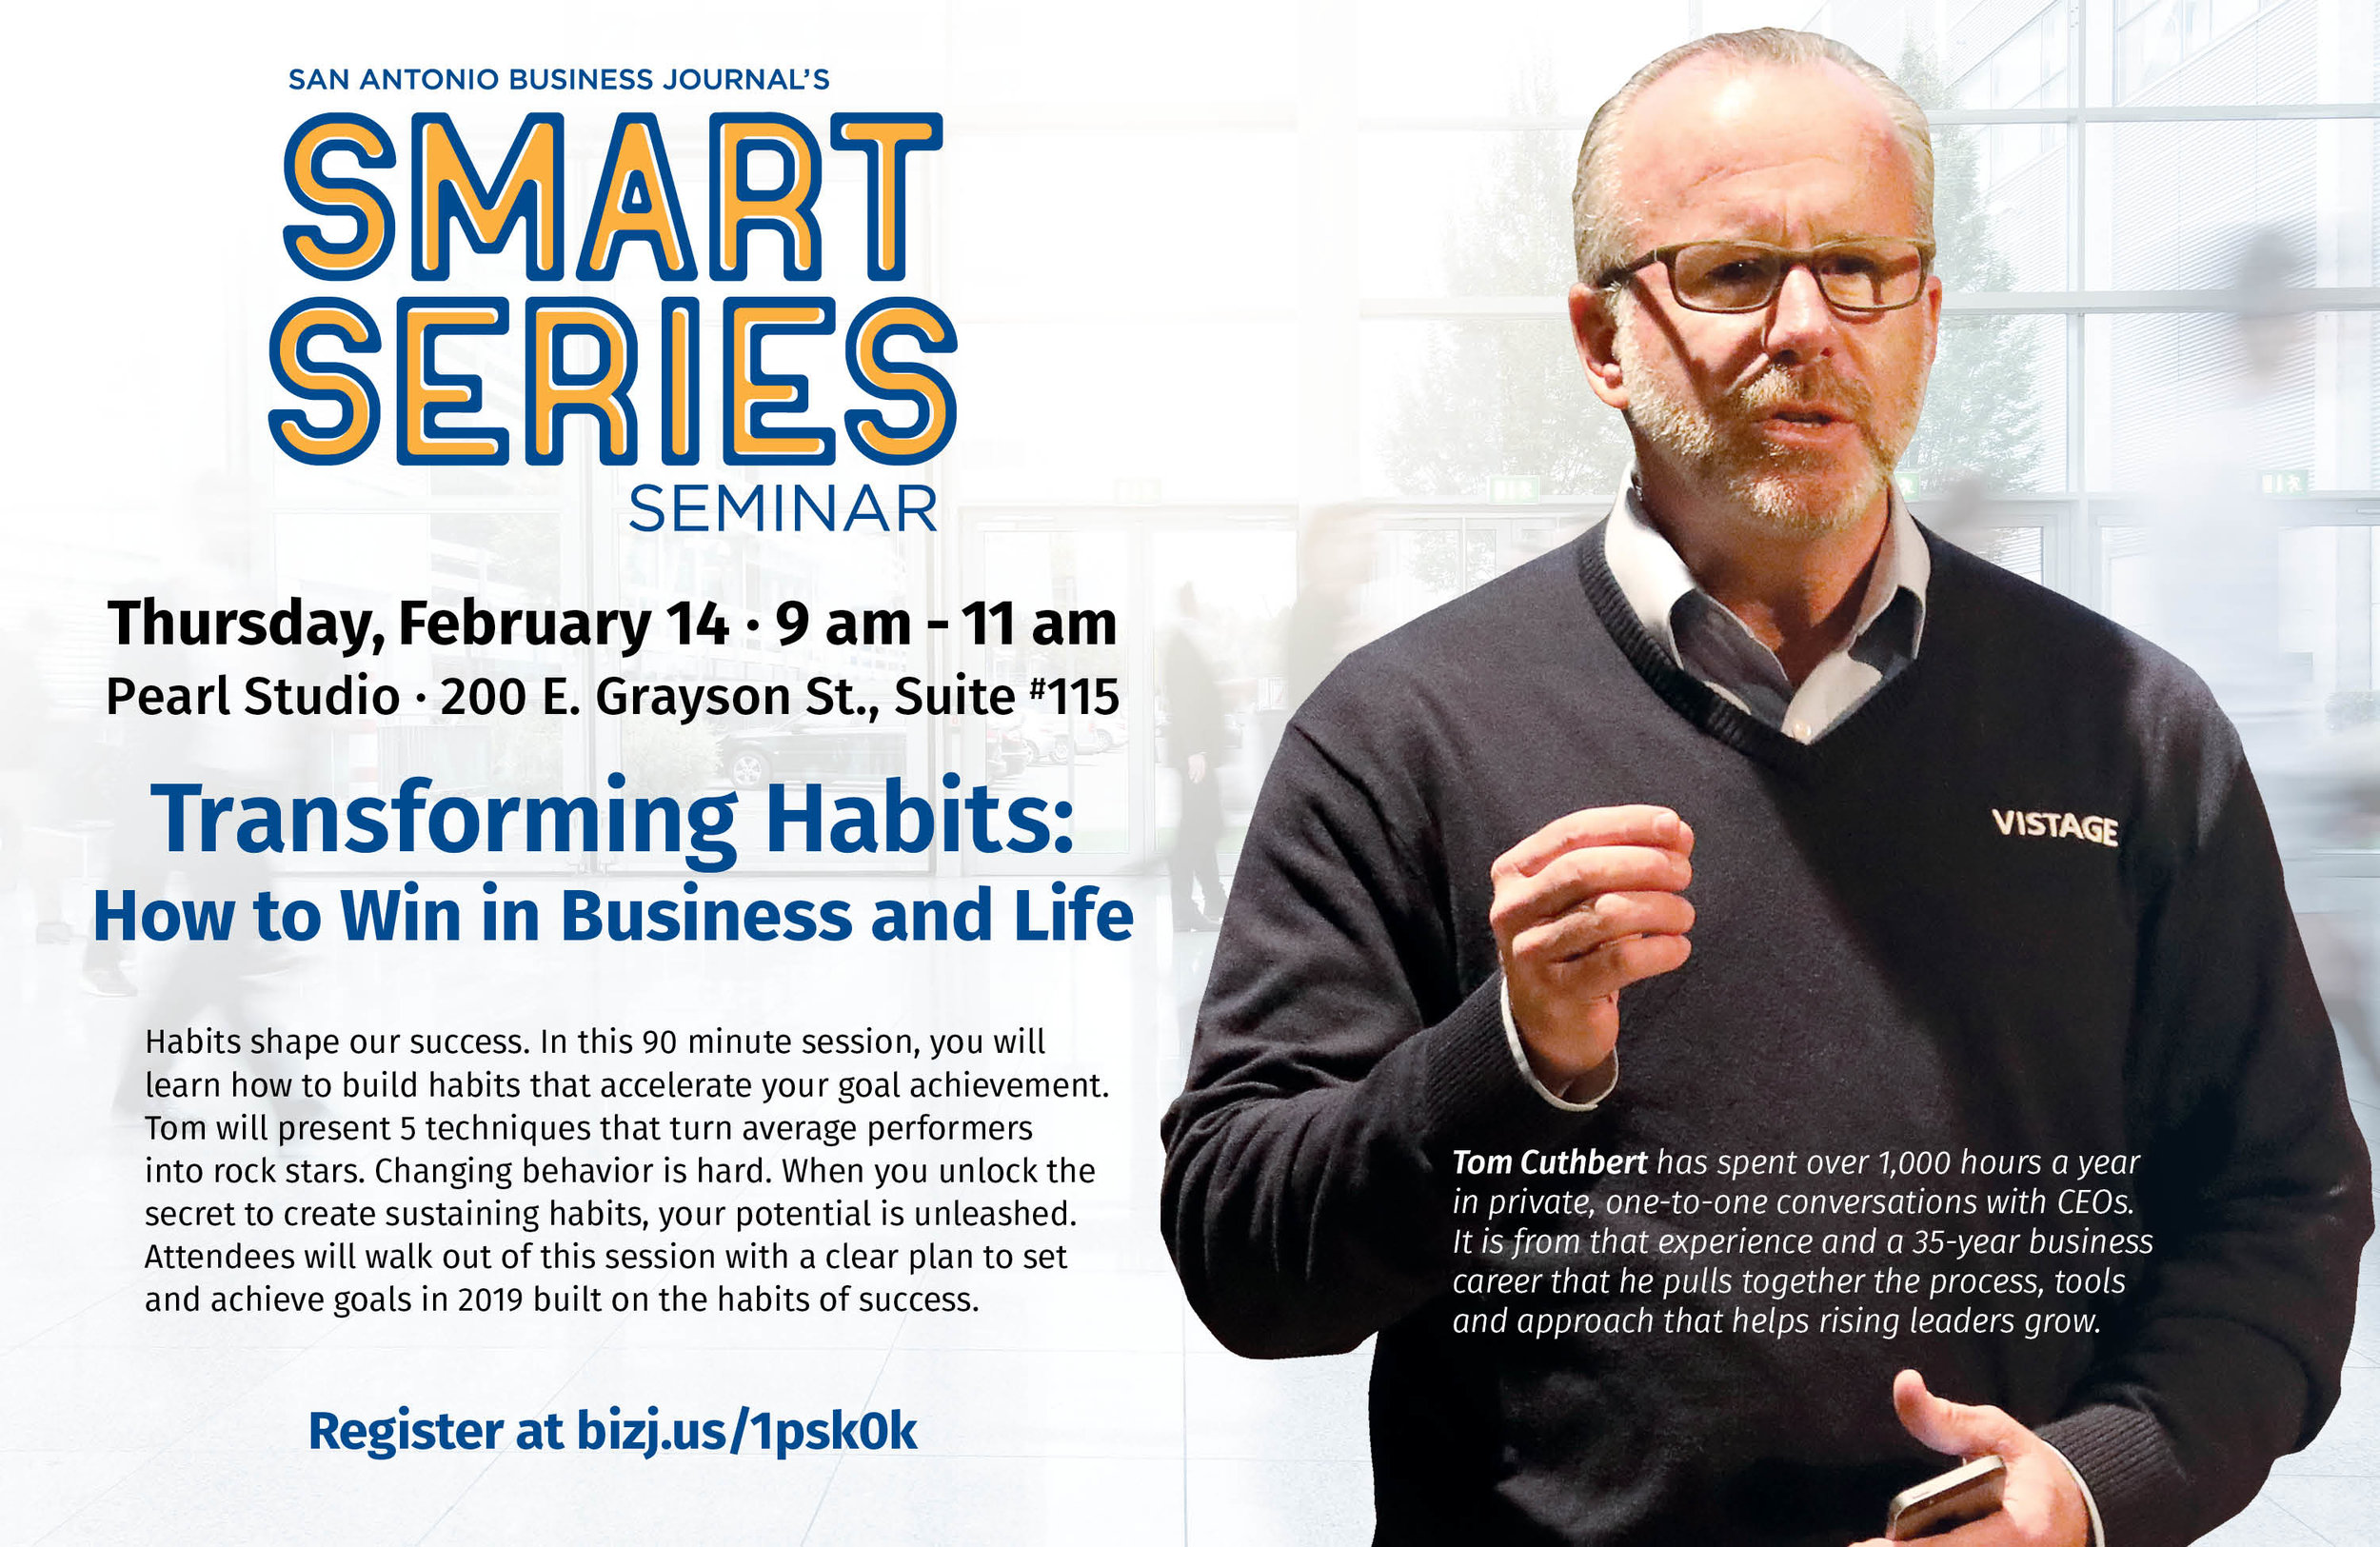 Smart Series 02.14.19_HP_TOM CUTHBERT 1.jpg